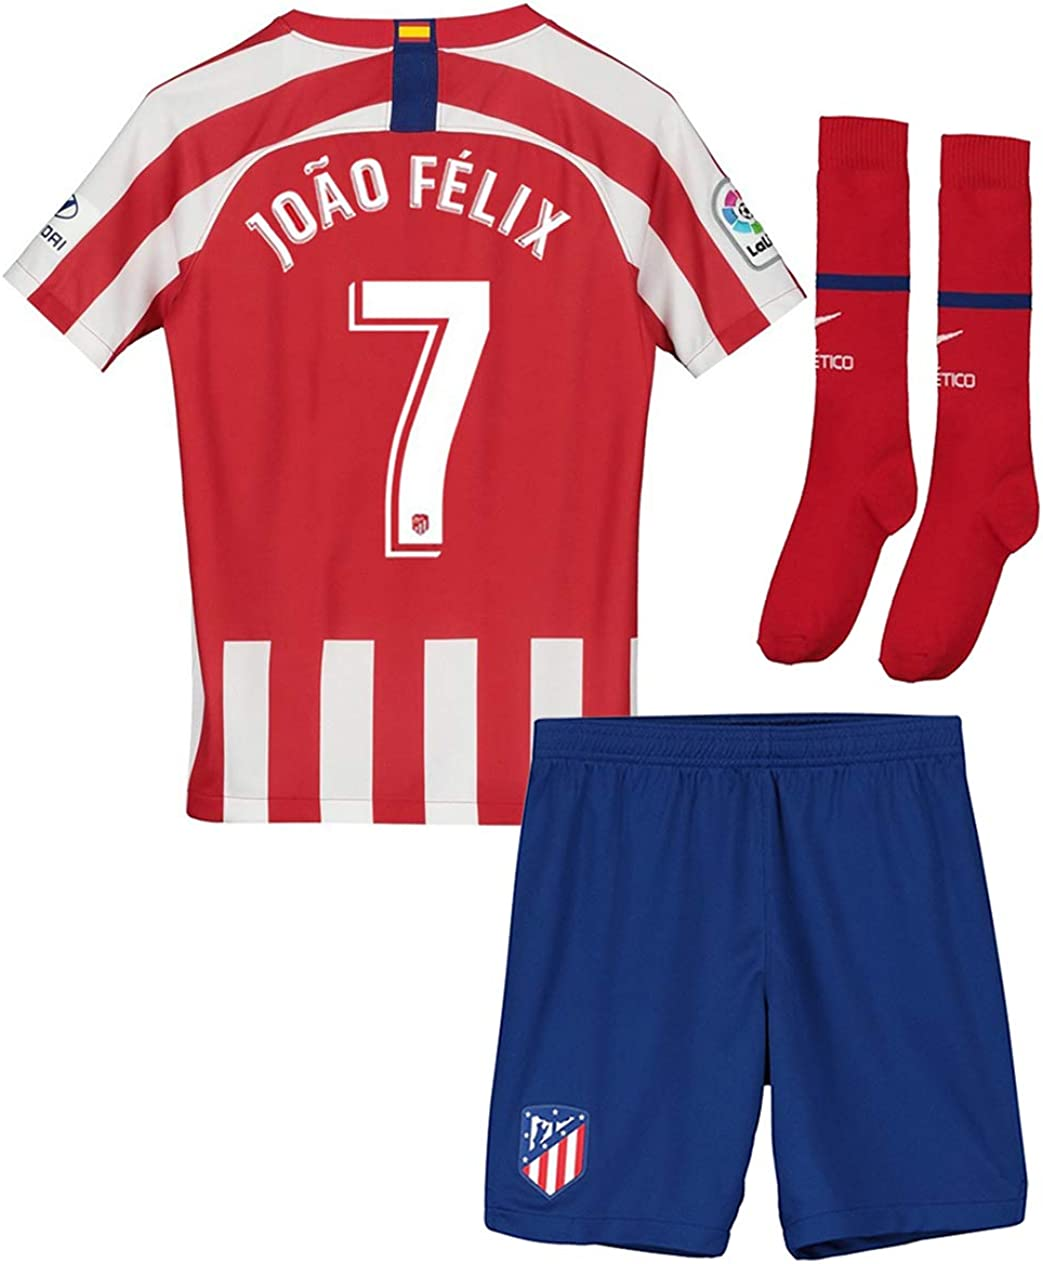 2020 Football Soccer Home /& Away Kits Kids Jersey Suit Training Outfits /& Socks